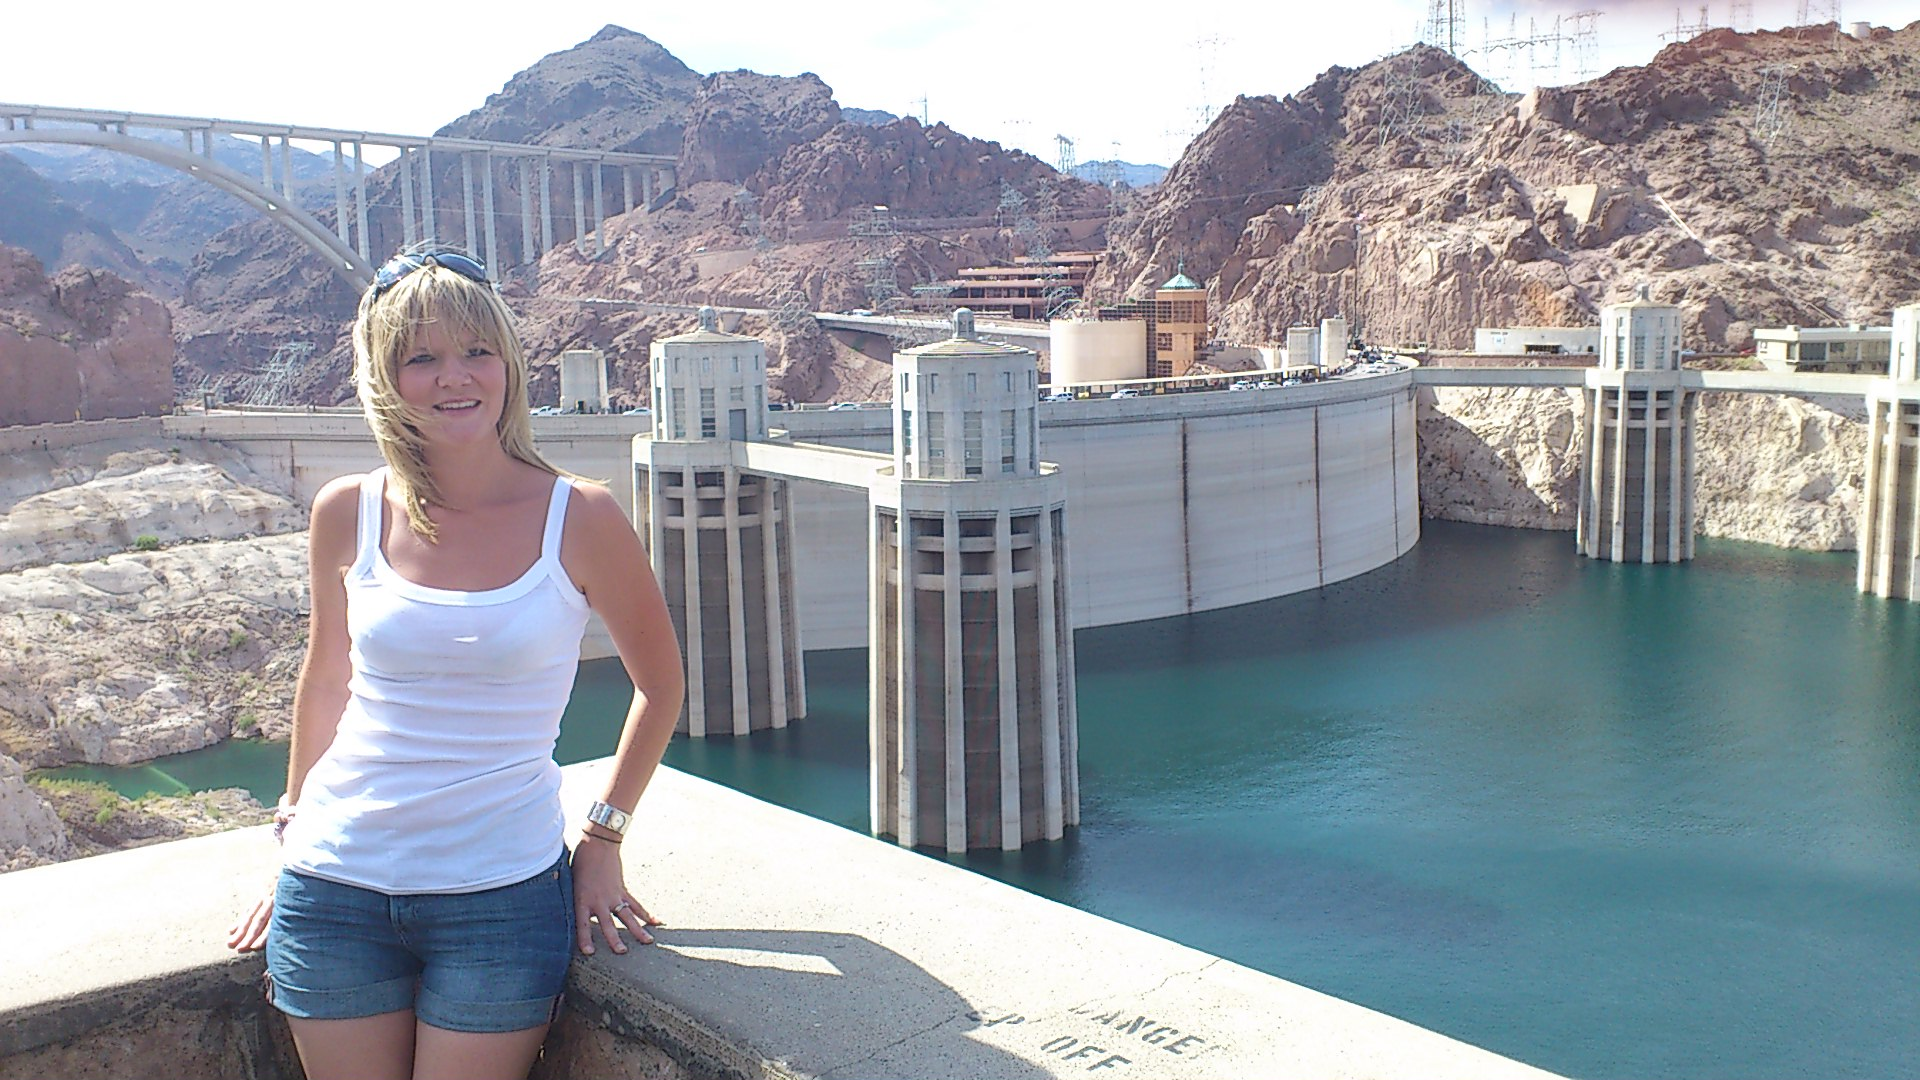 Hoover Dam Wallpaper 20   1920 X 1080 stmednet 1920x1080